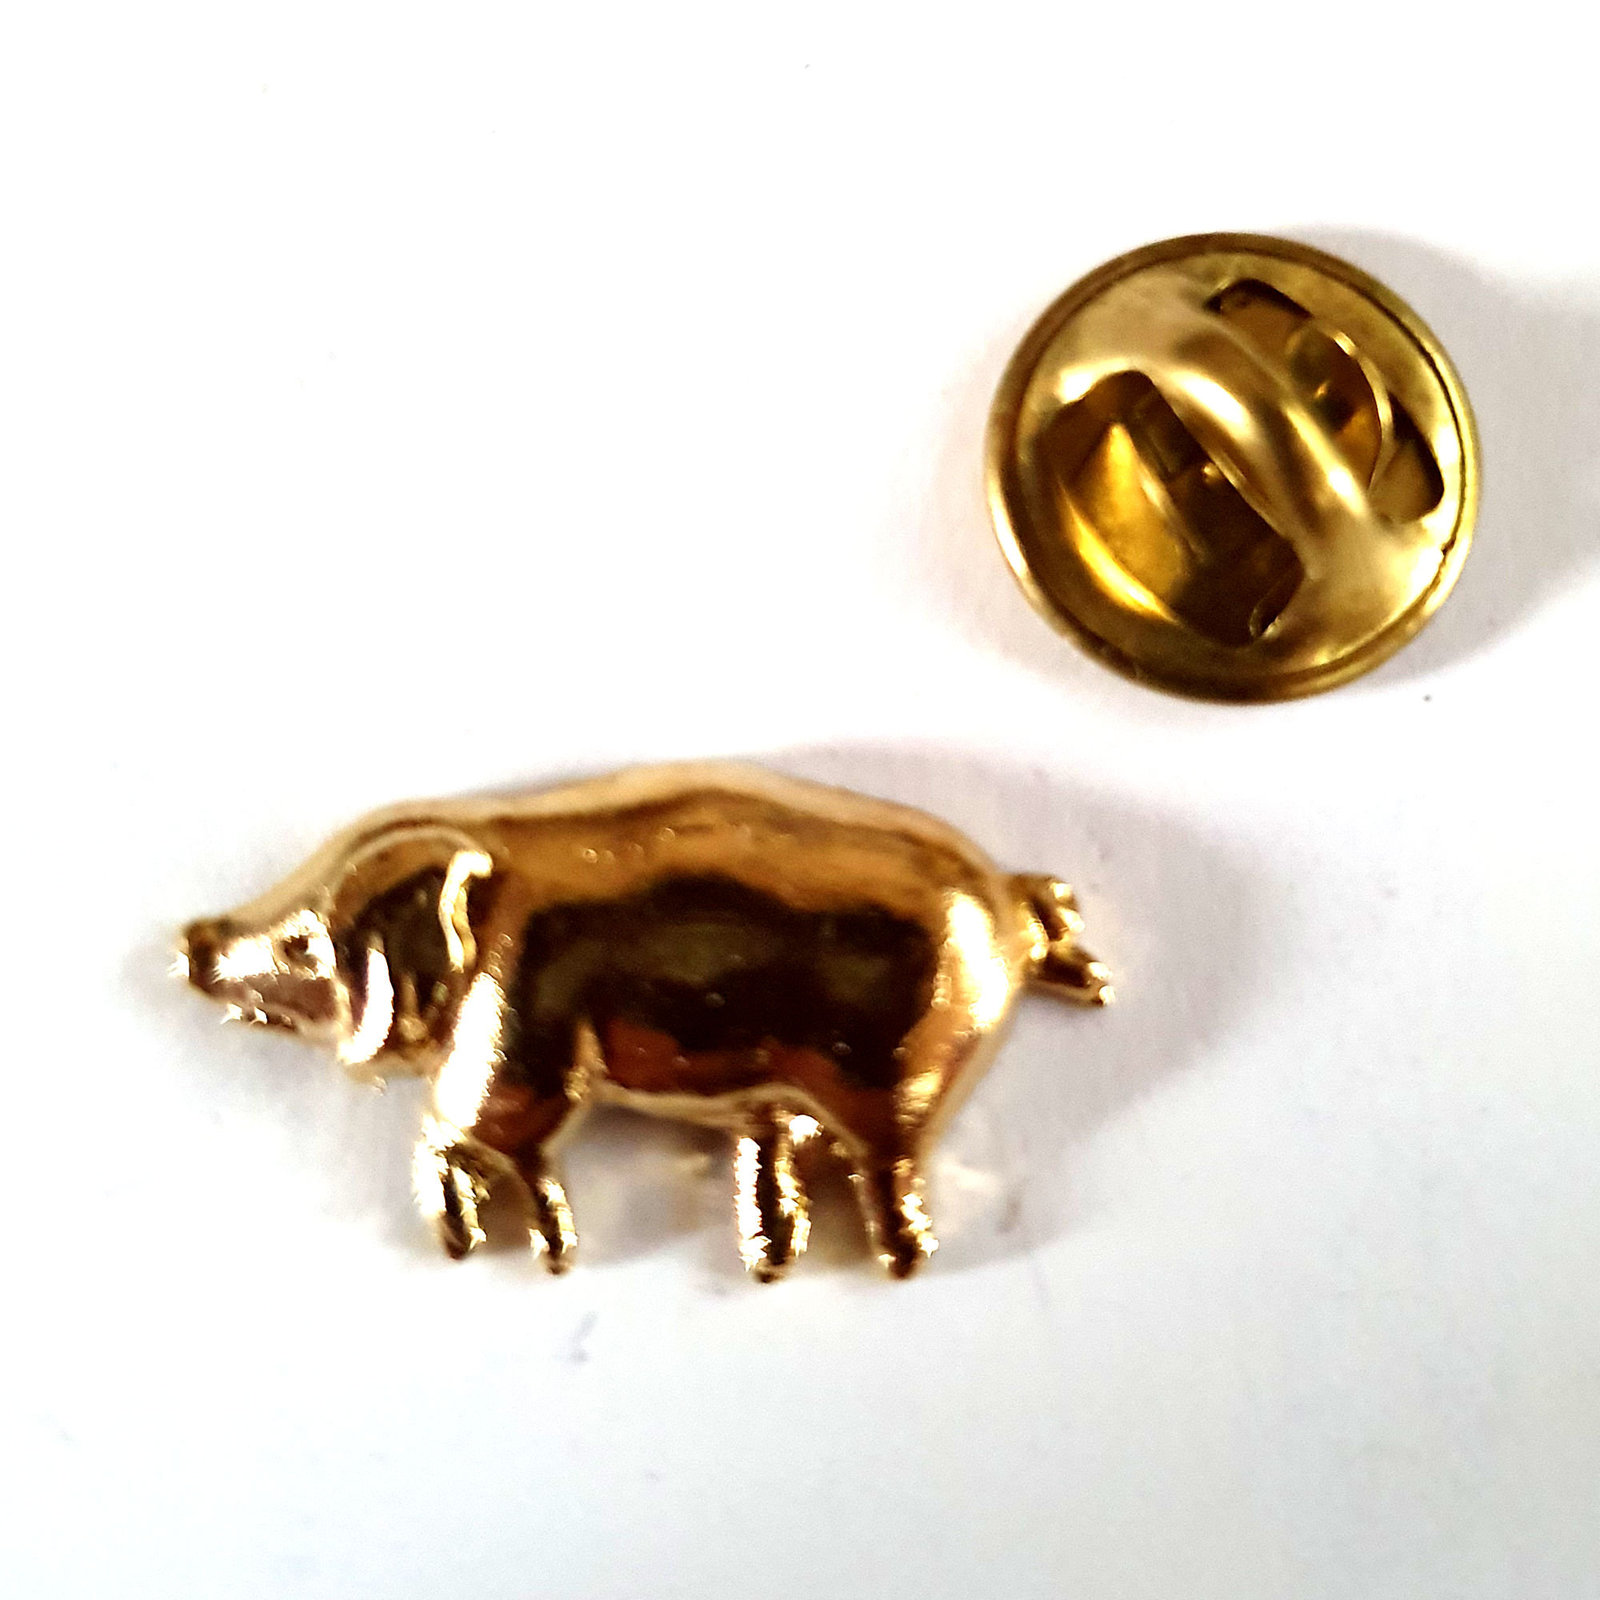 gold  pig Design pin badge, lapel badge in gift box animal, farm